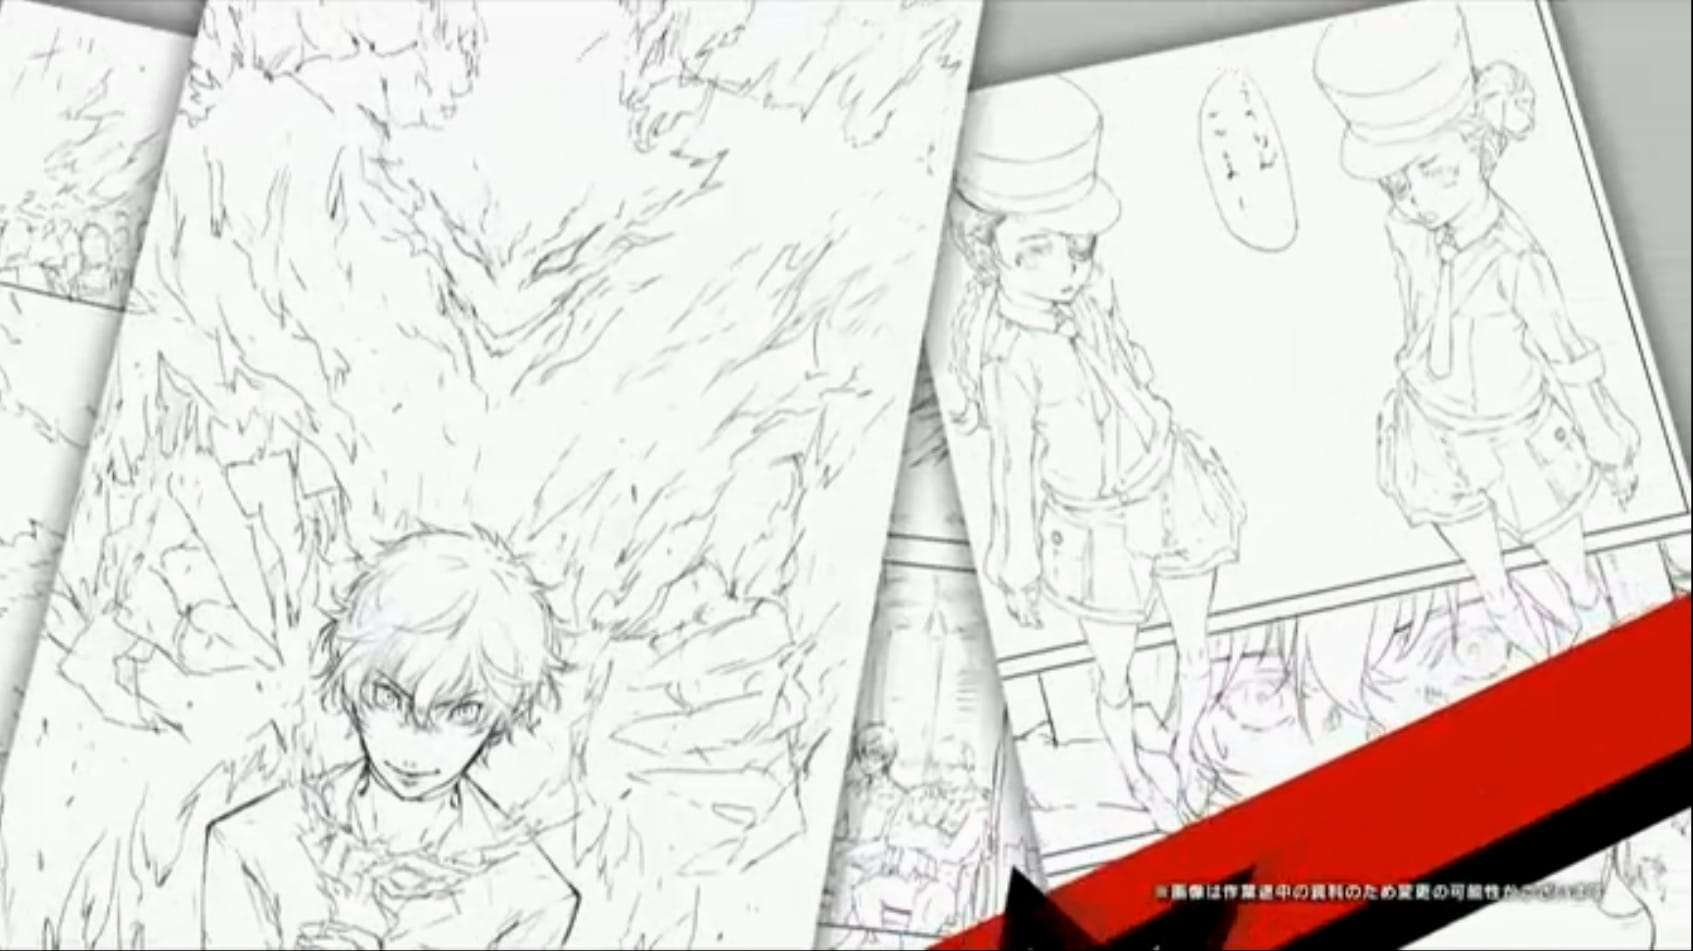 Persona 5 Anime Characters : Persona manga chapter released central